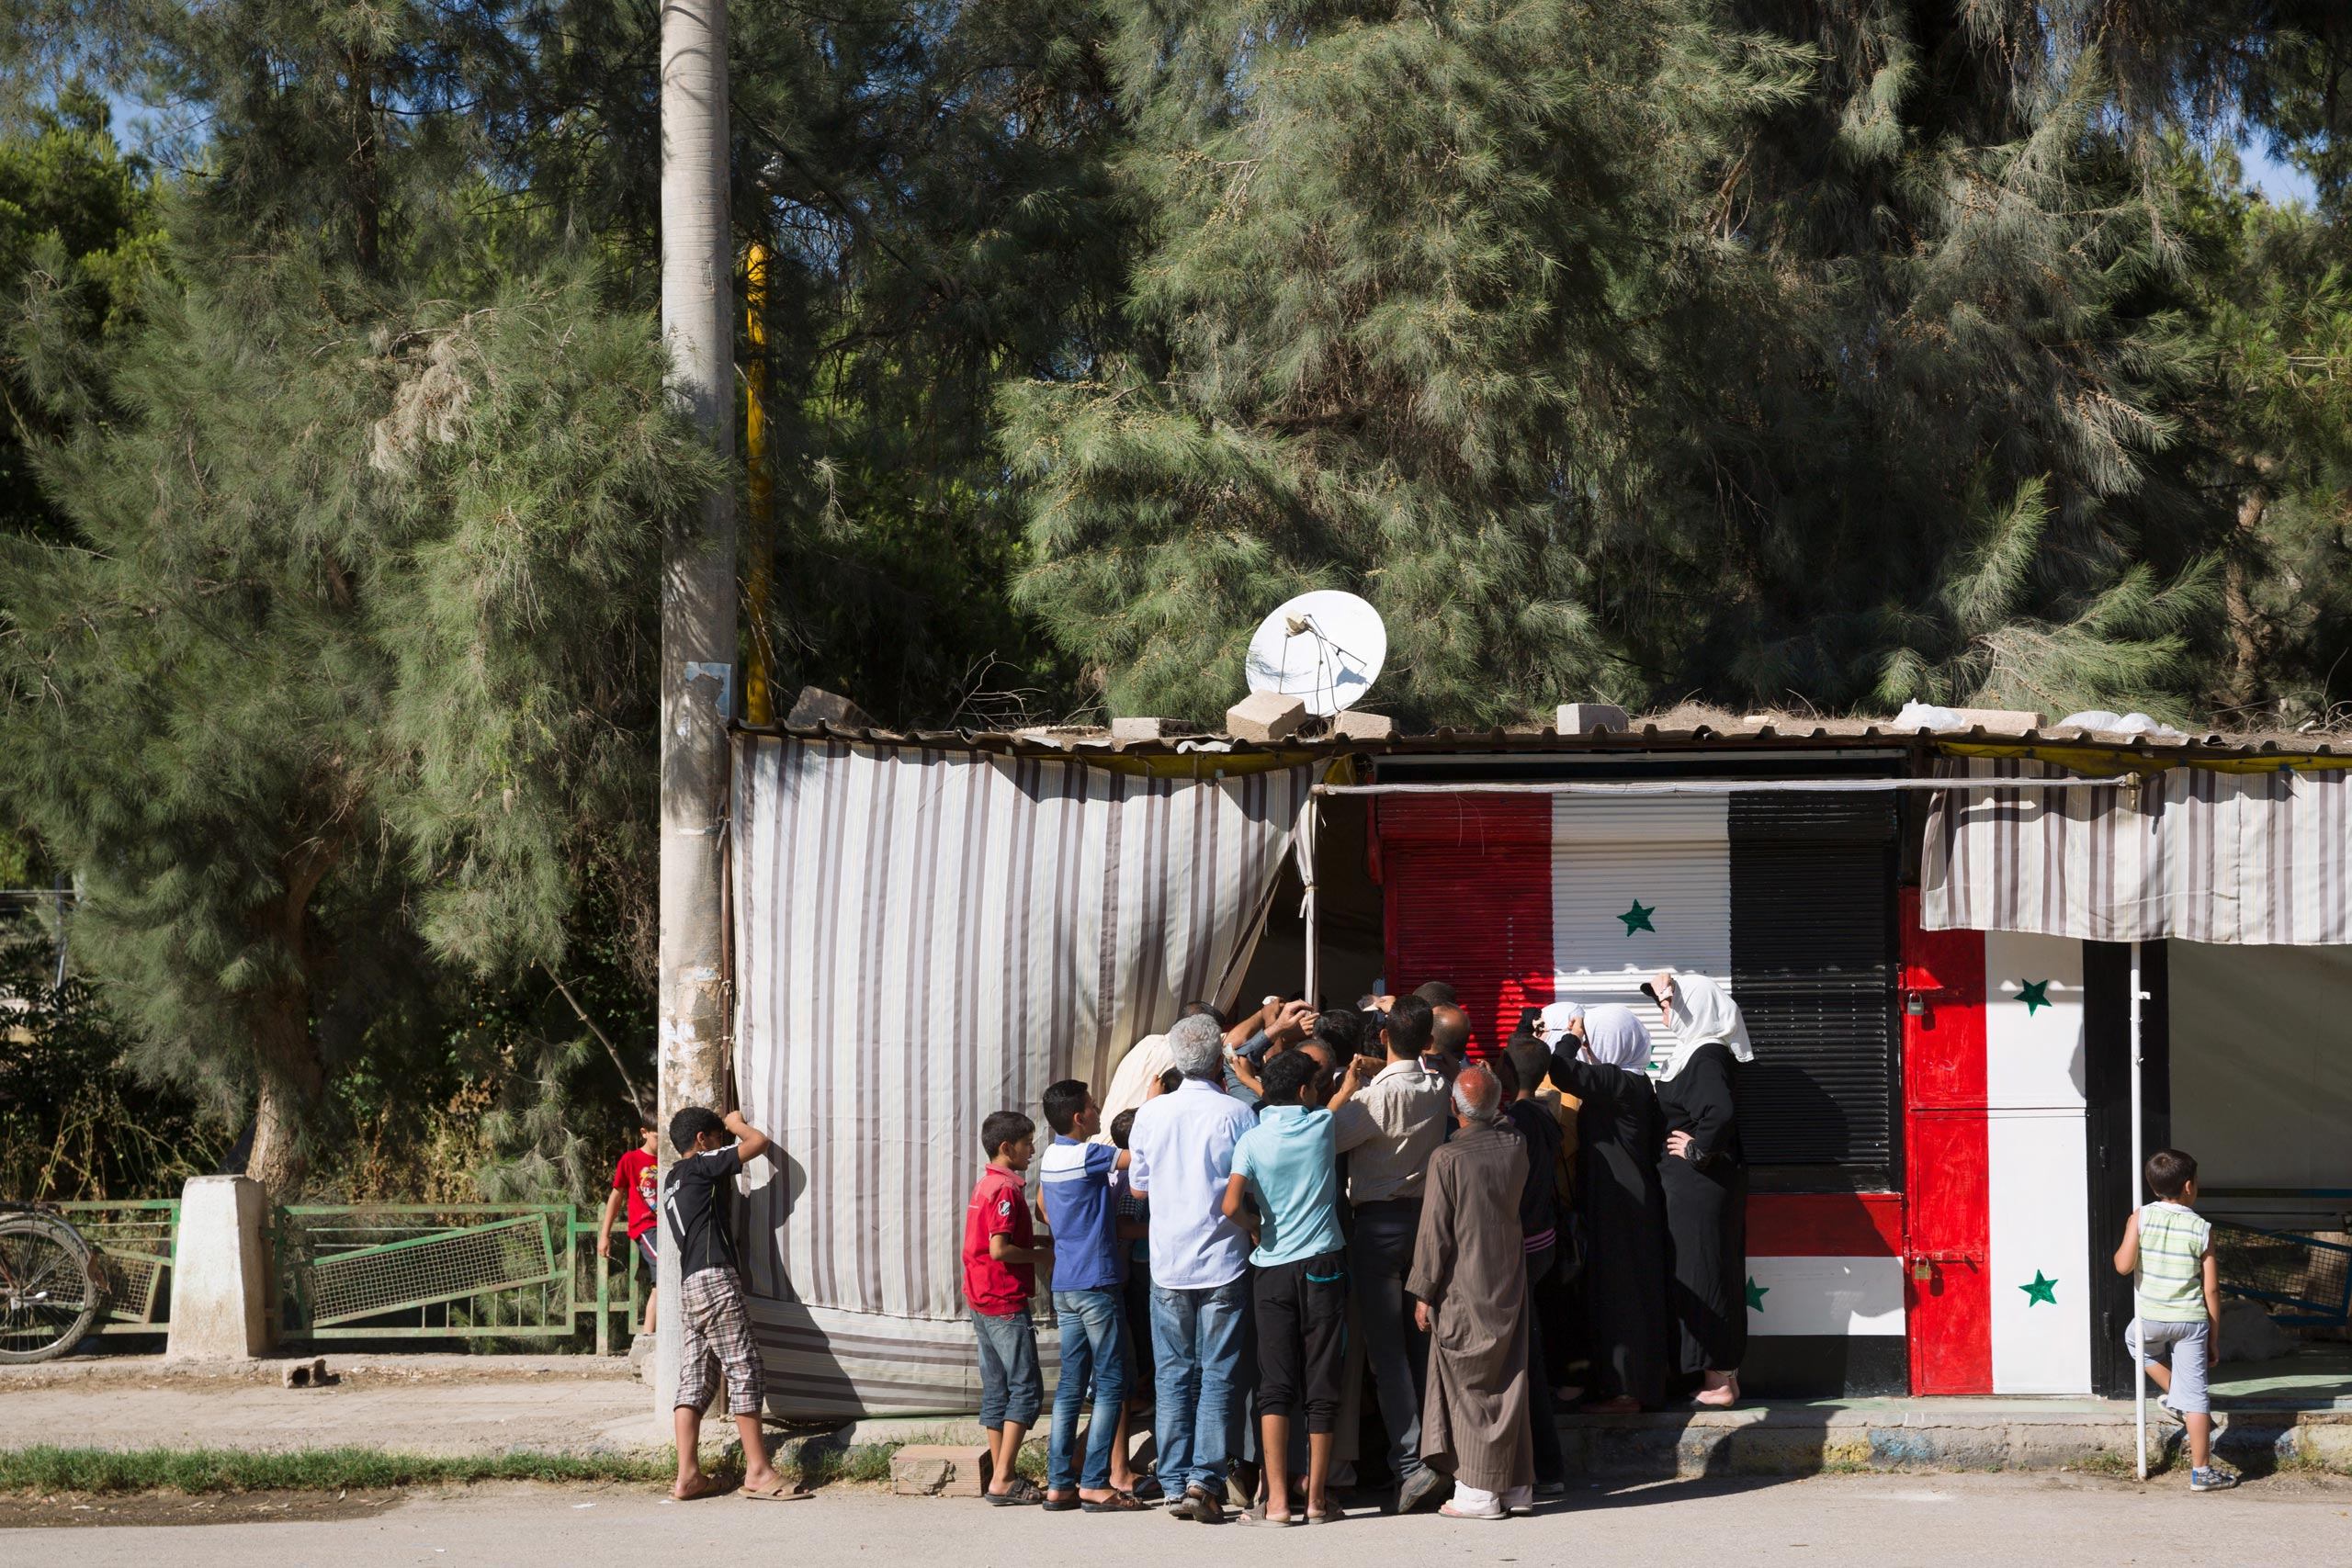 Residents often wait hours to buy bread provided by government-run bakeries because food is scarce. The Syrian government is struggling to retain normalcy in Deir-ez Zor, while fighting ISIS for control of the city, June 1, 2015.